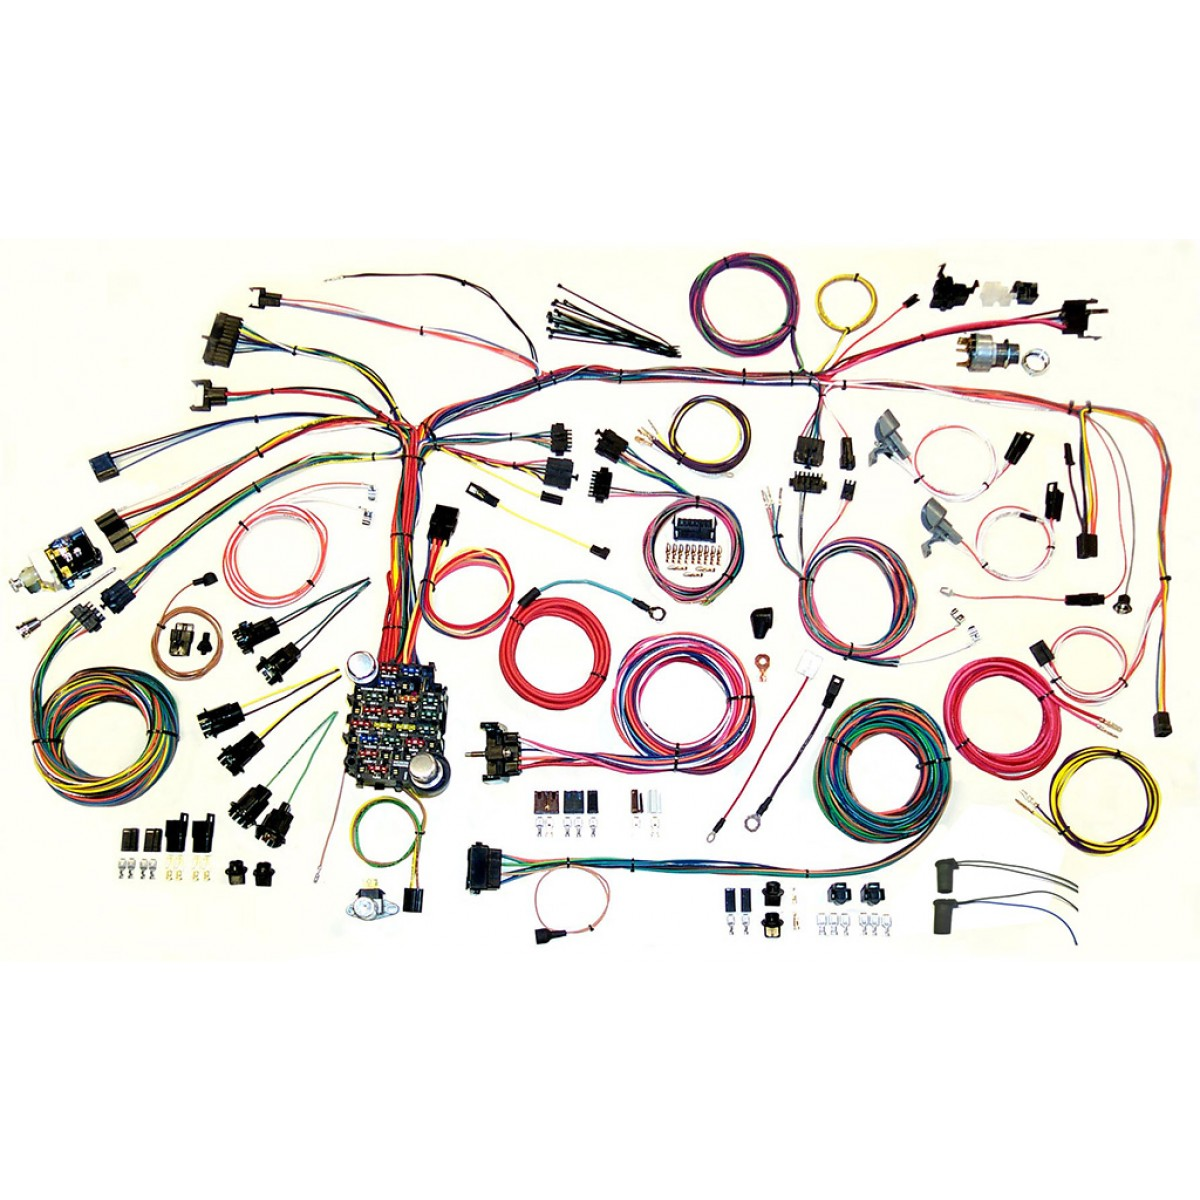 firebird wire harness complete wiring harness kit 1967 1968 firebird part 500886 1967 1968 pontiac firbird complete wiring harness kit 1967 1968